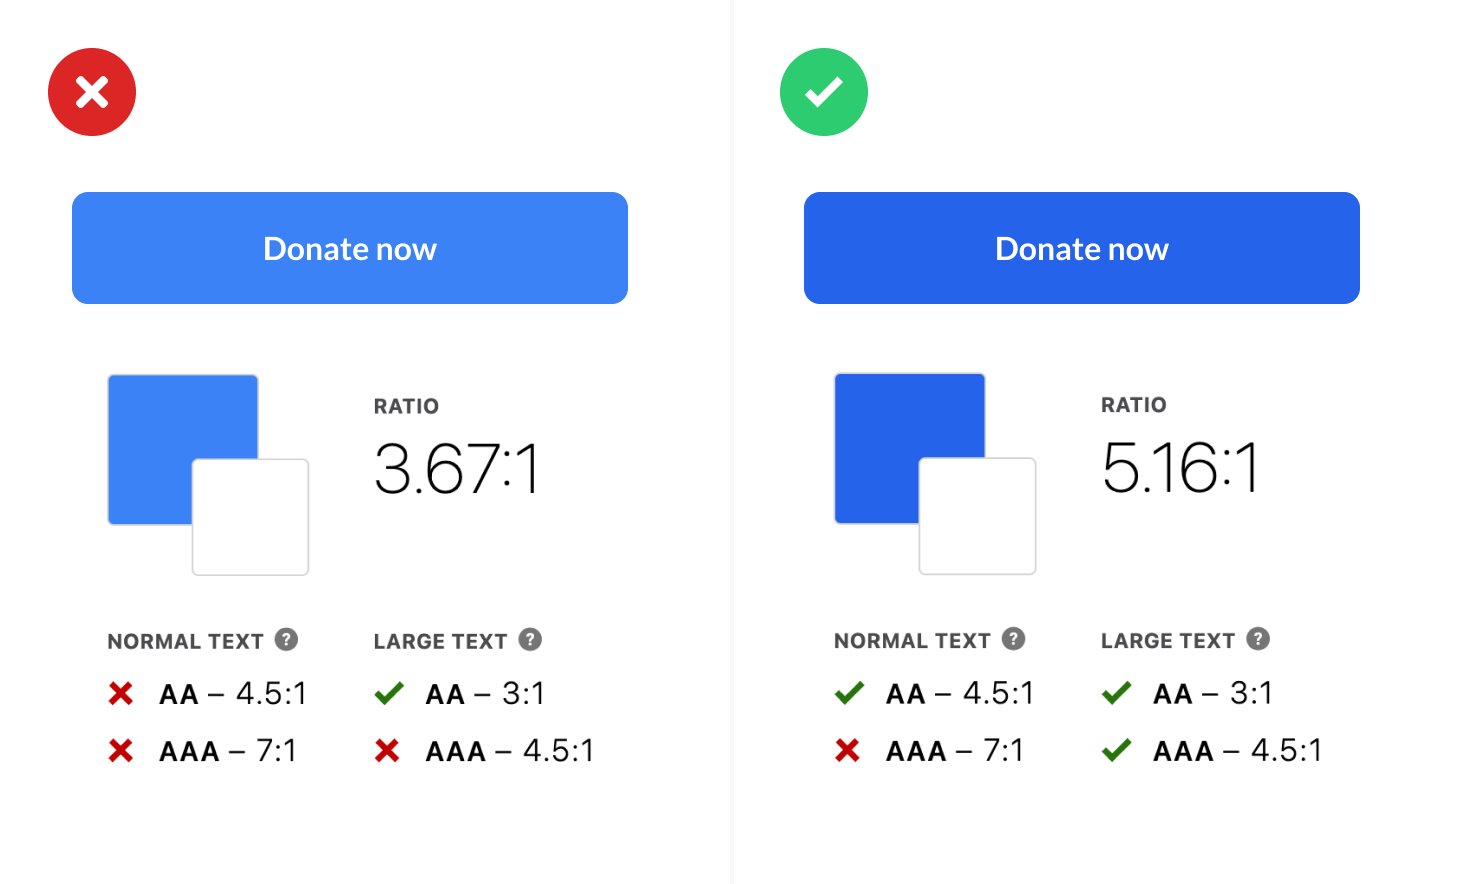 Example of contrast on two donation buttons, one that fails and one that passes AA tests.